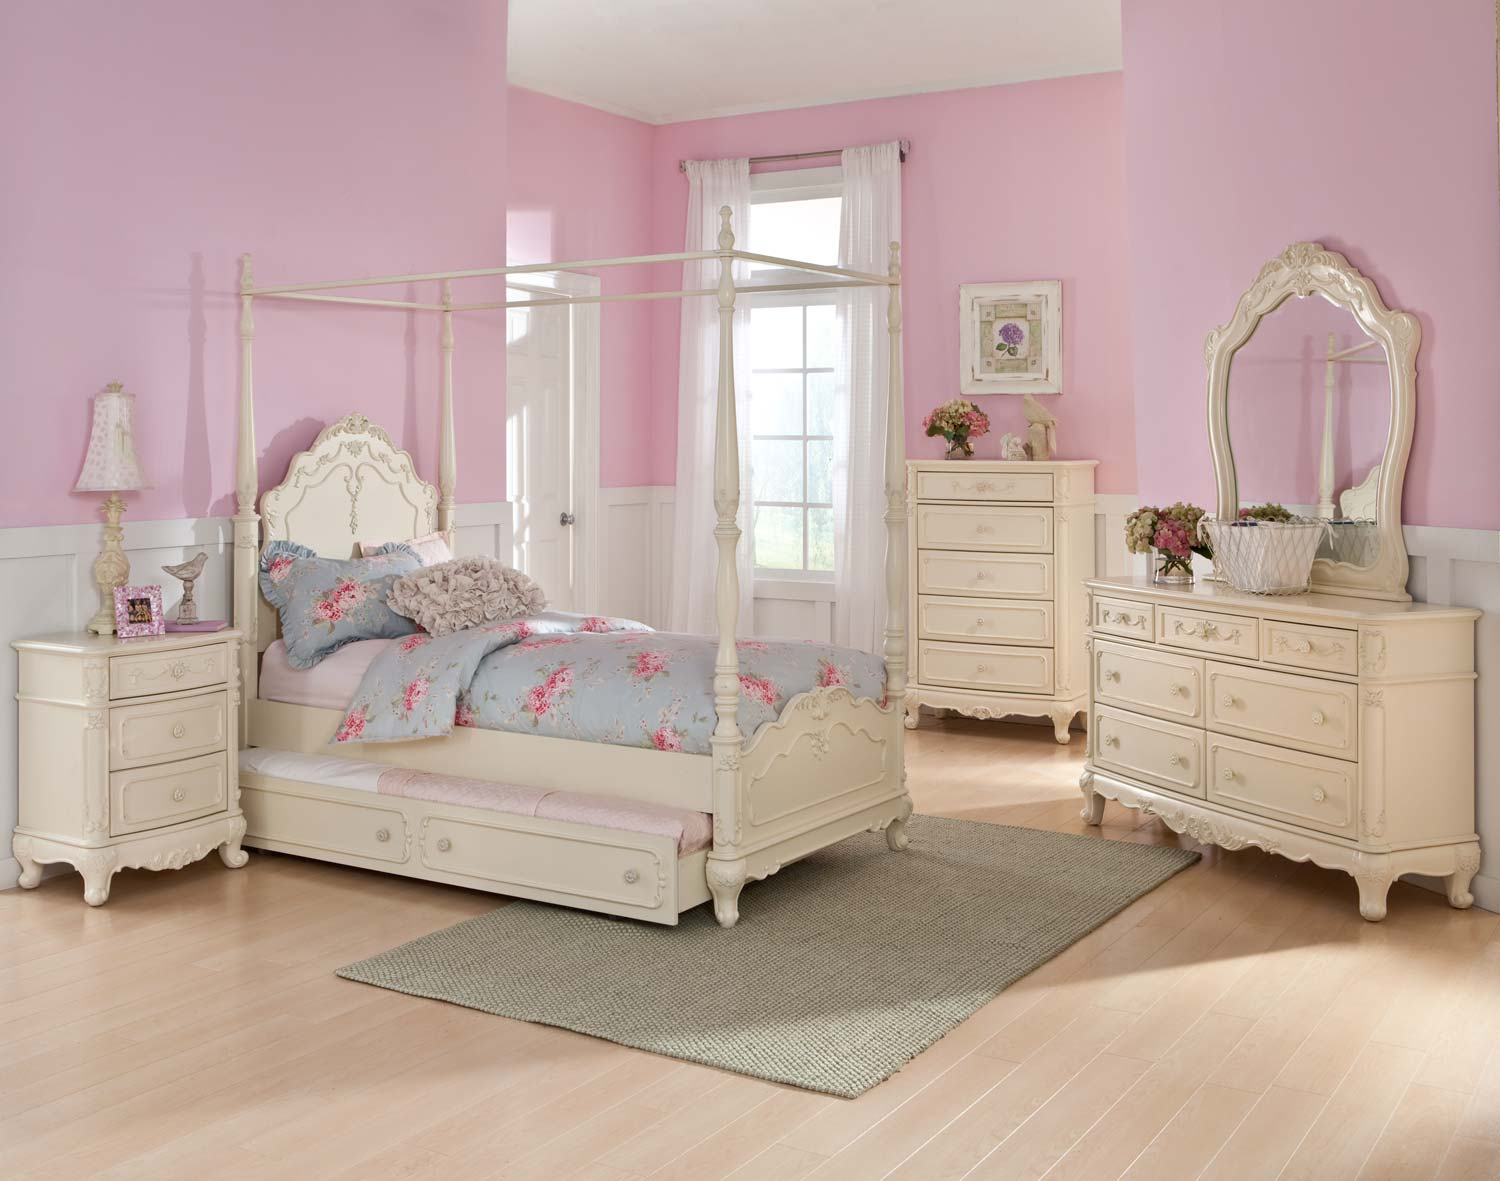 Homelegance Cinderella Poster Bedroom Set - Ecru